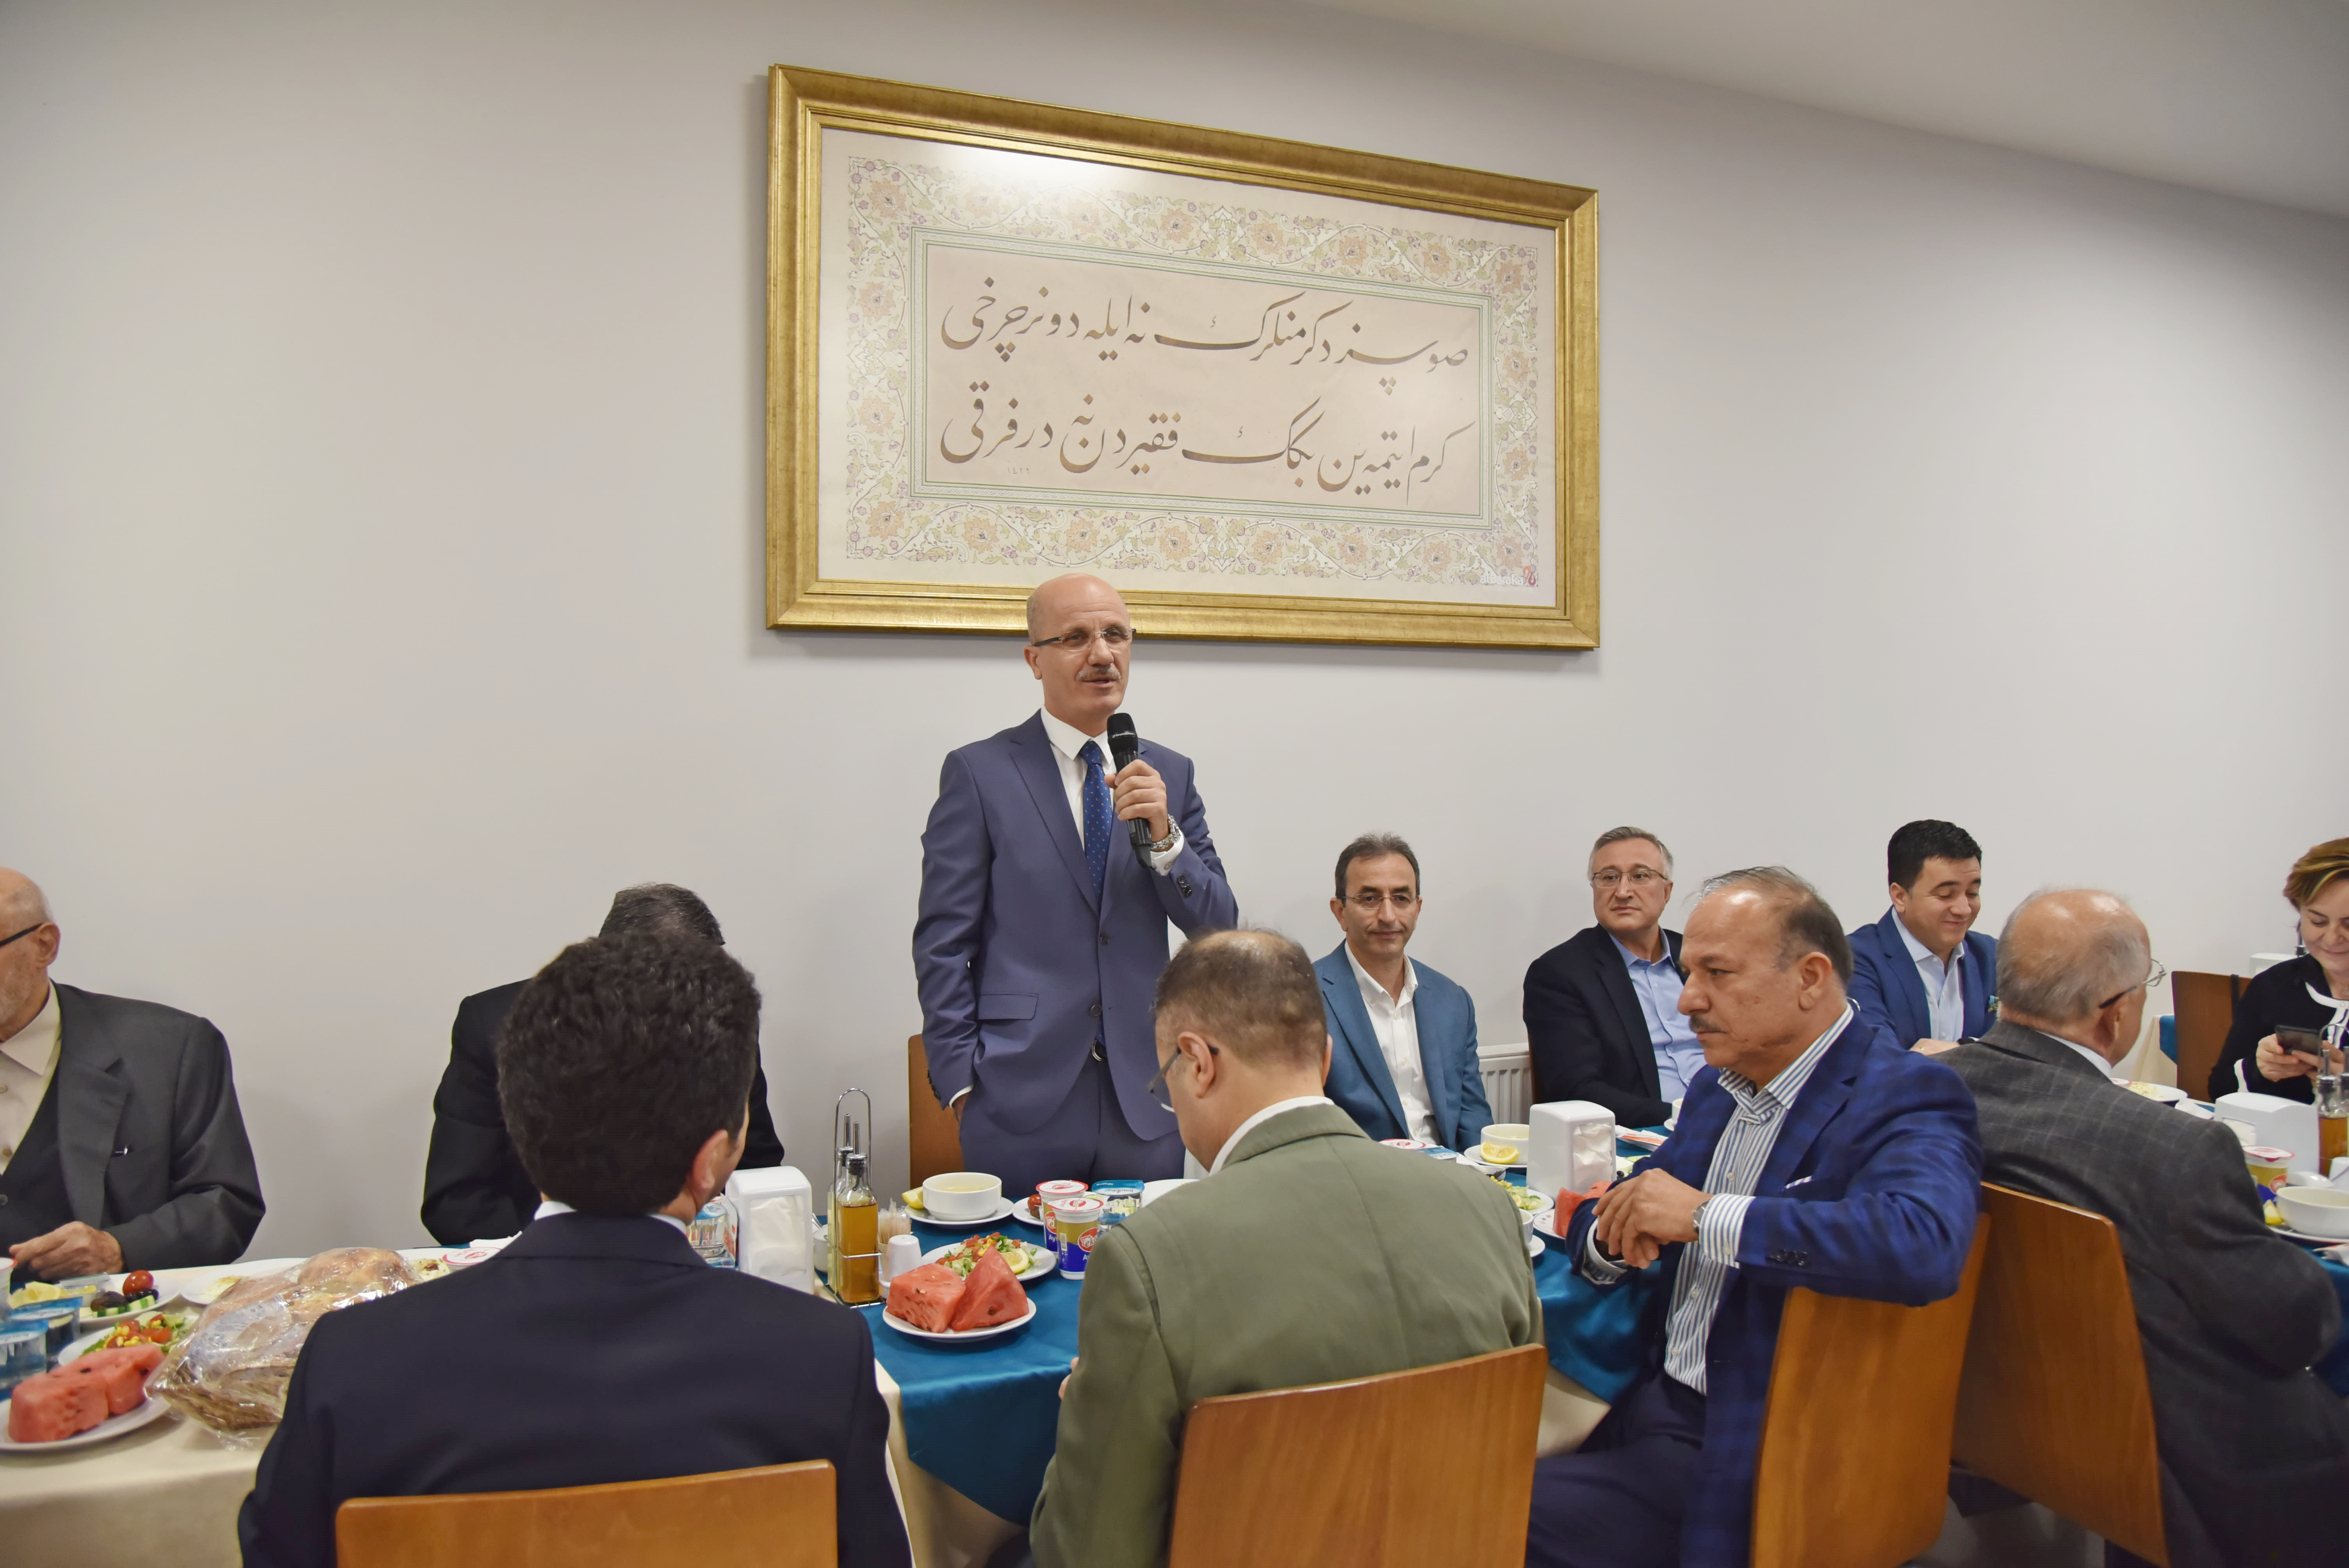 Marmara University's Traditional Iftar Was Held